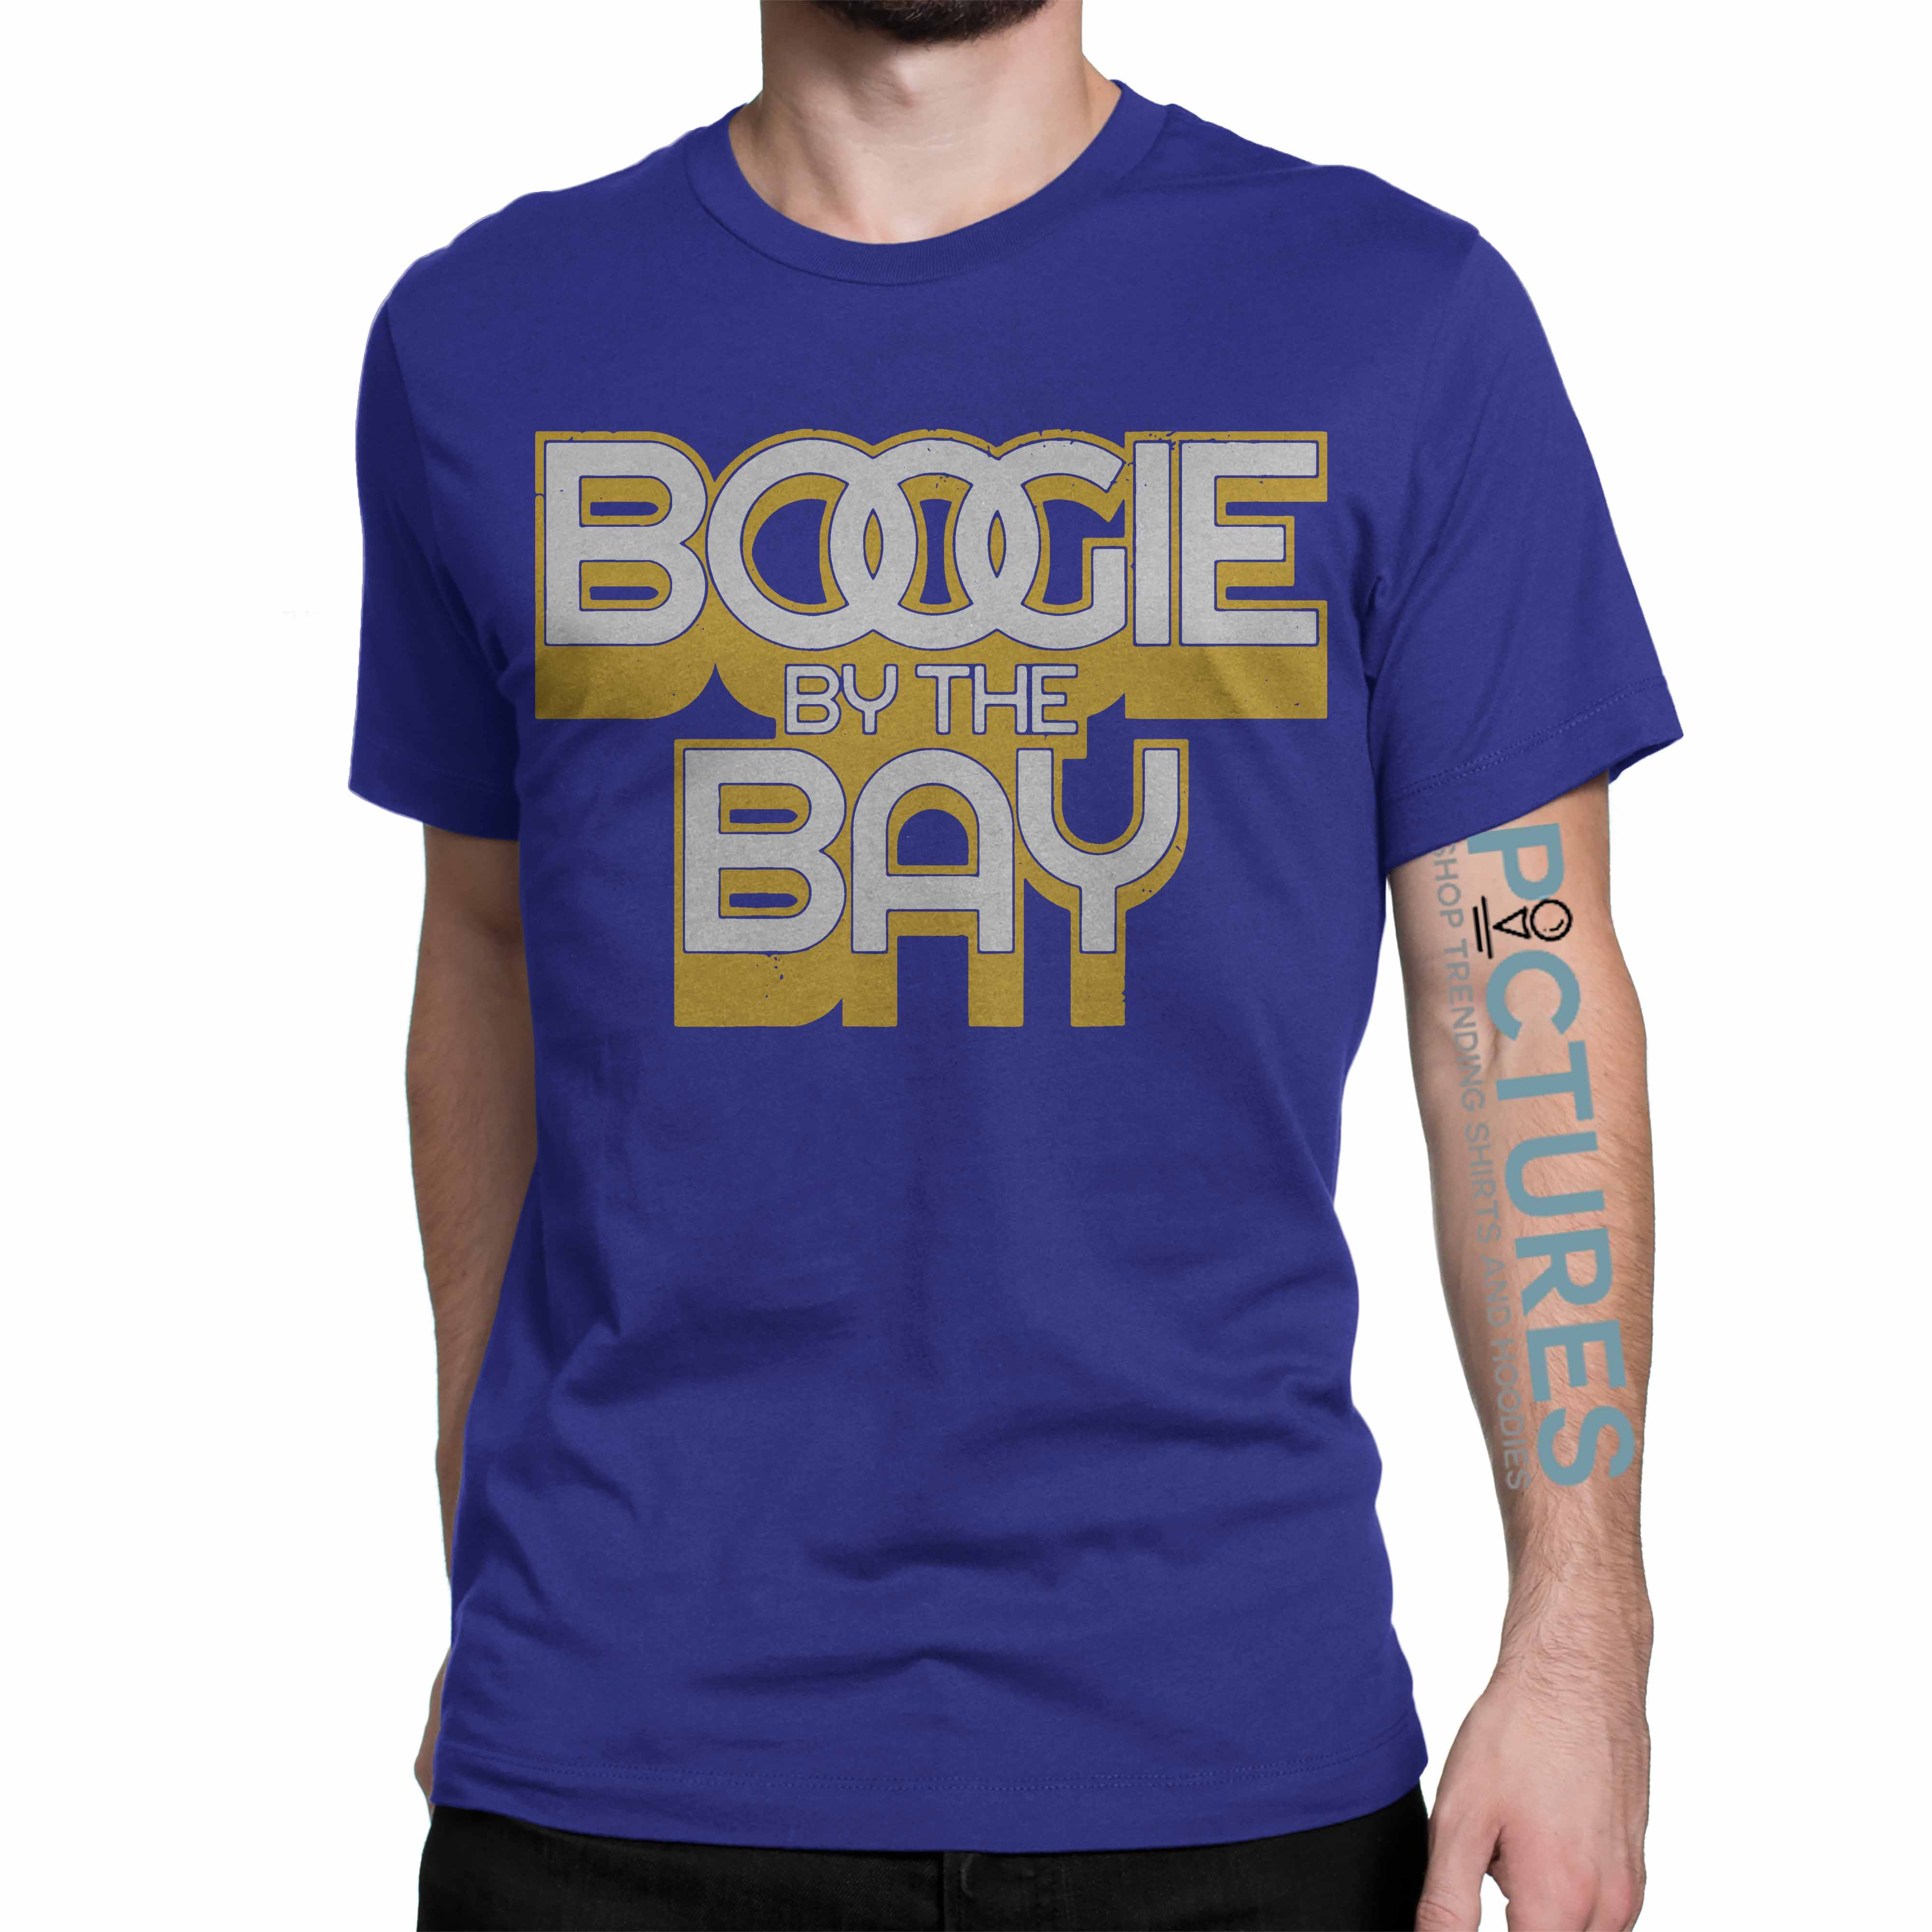 Boogie by the bay Demarcus shirt